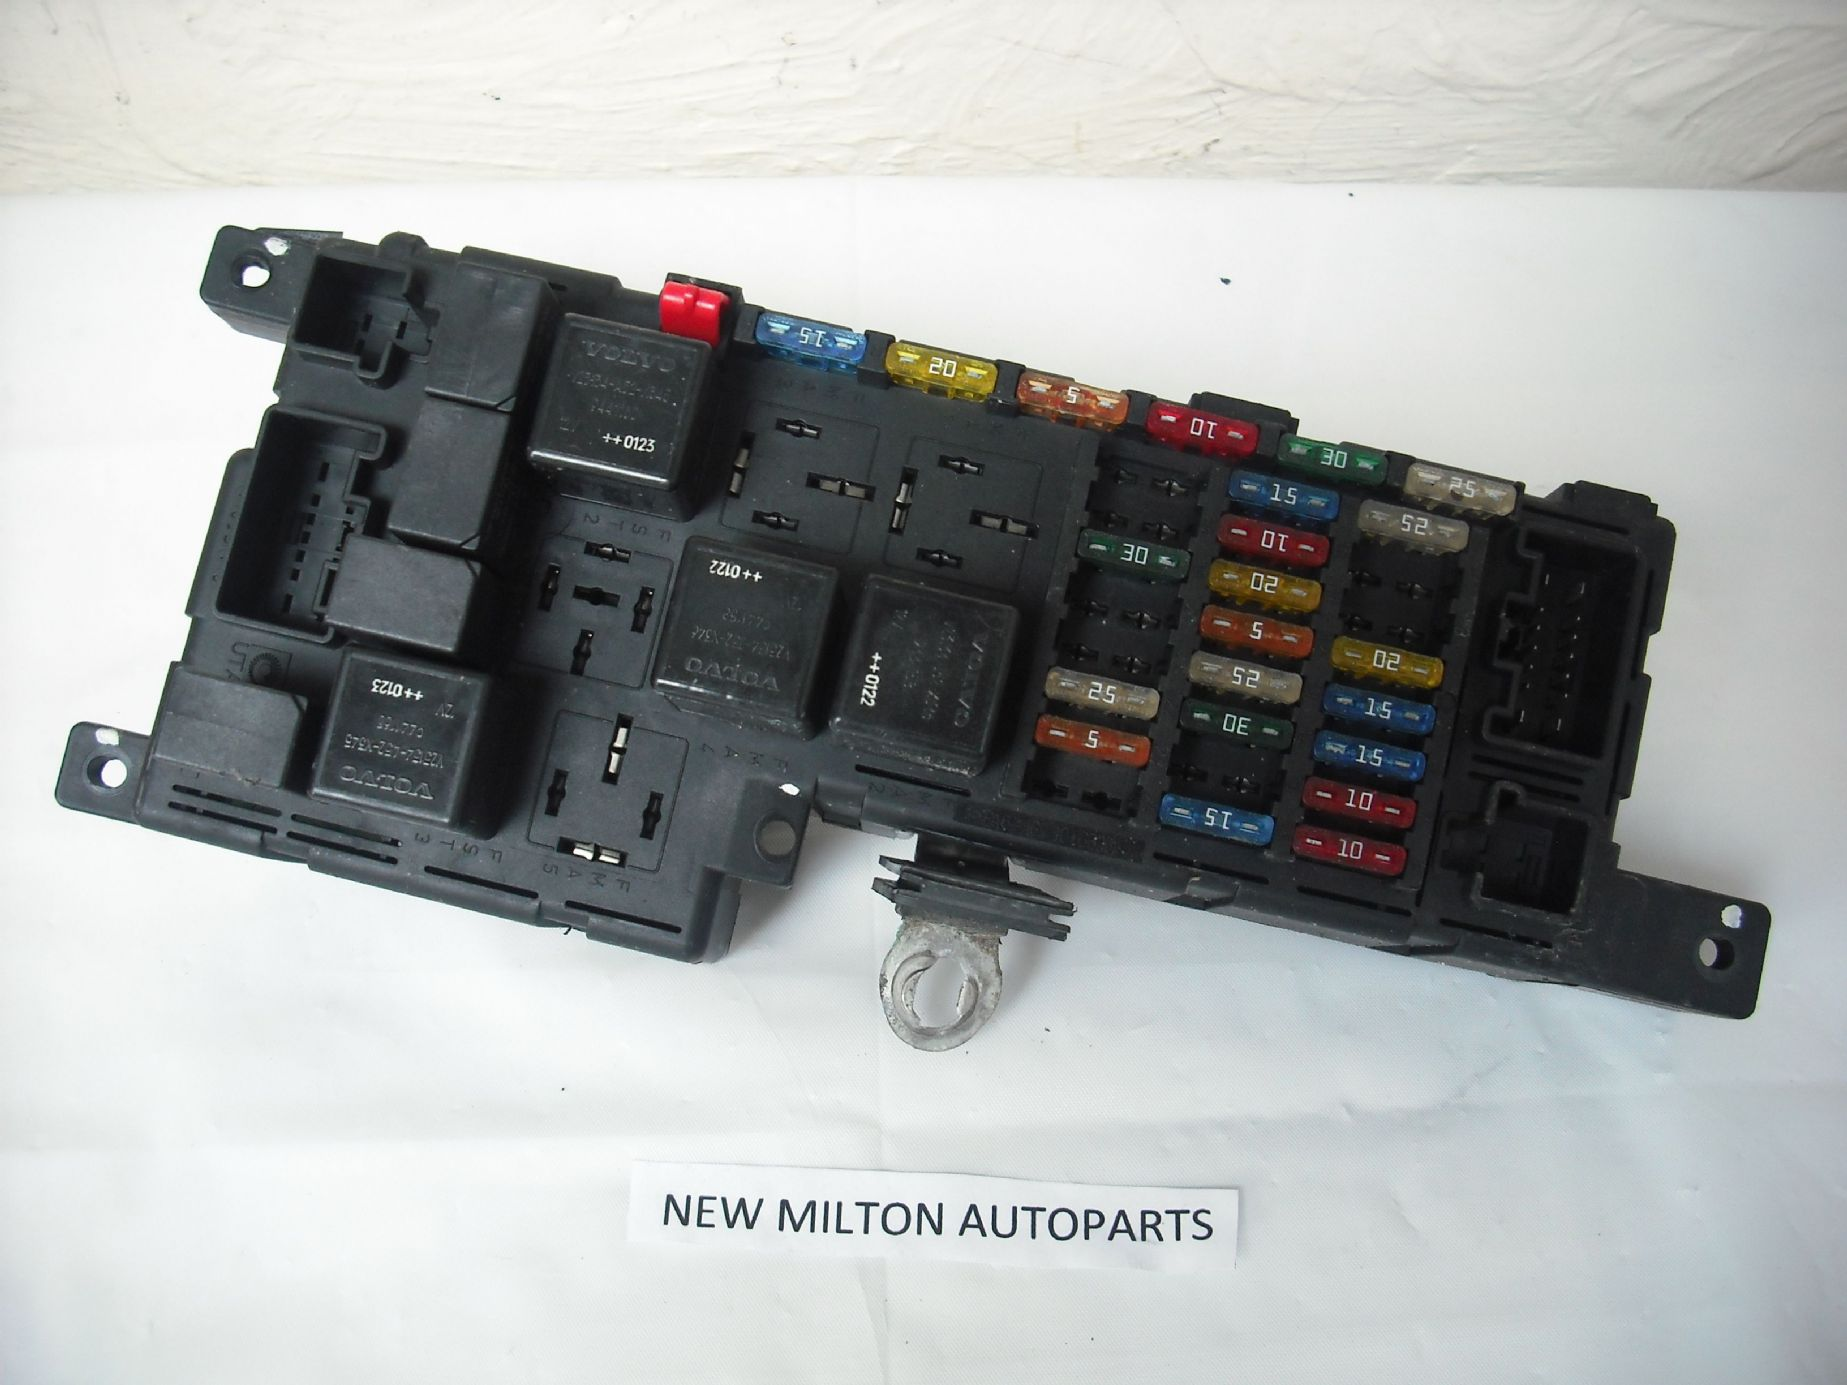 1999 Volvo V70 Fuse Box Automotive Wiring Diagram S70 Engine S60 S80 Bay Controller Petrol